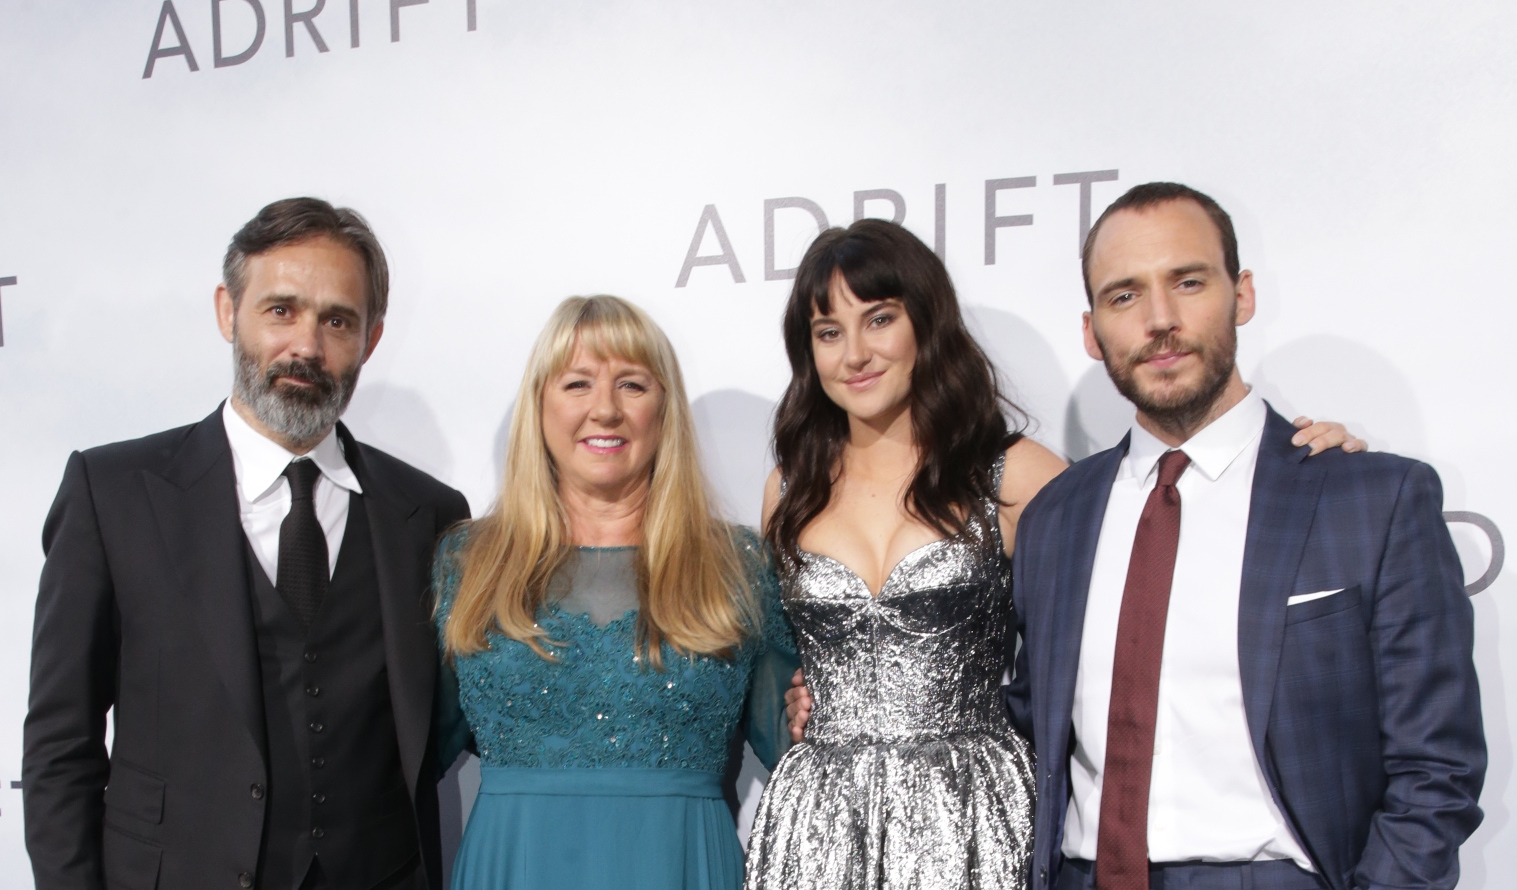 Director Baltasar Kormákur, Tami Oldham Ashcraft, Shailene Woodley, and Sam Claflin attend the World Premiere of ADRIFT at L.A. Live Regal Cinemas in Los Angeles, Calif., Wednesday, May 23, 2018. Photo: Steve Cohn for STXfilms